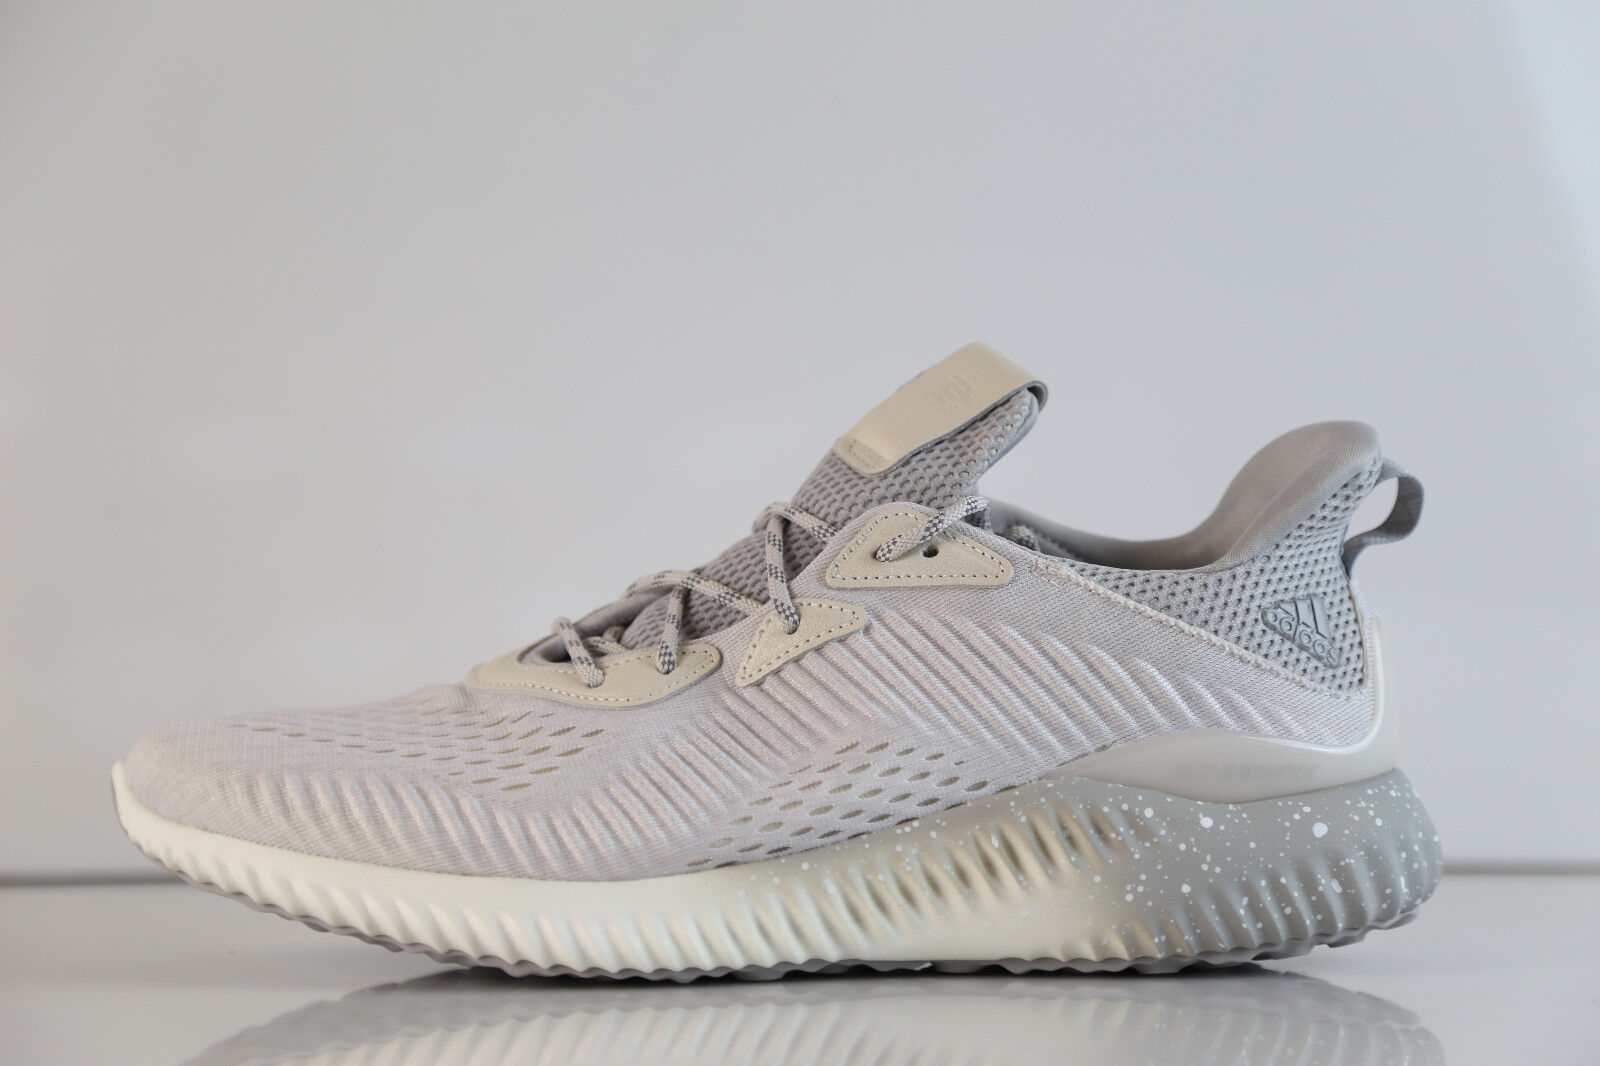 Adidas Reigning Champ Alphabounce 1 RC Core White Grey Chalk CG5328 8.5-13 alpha